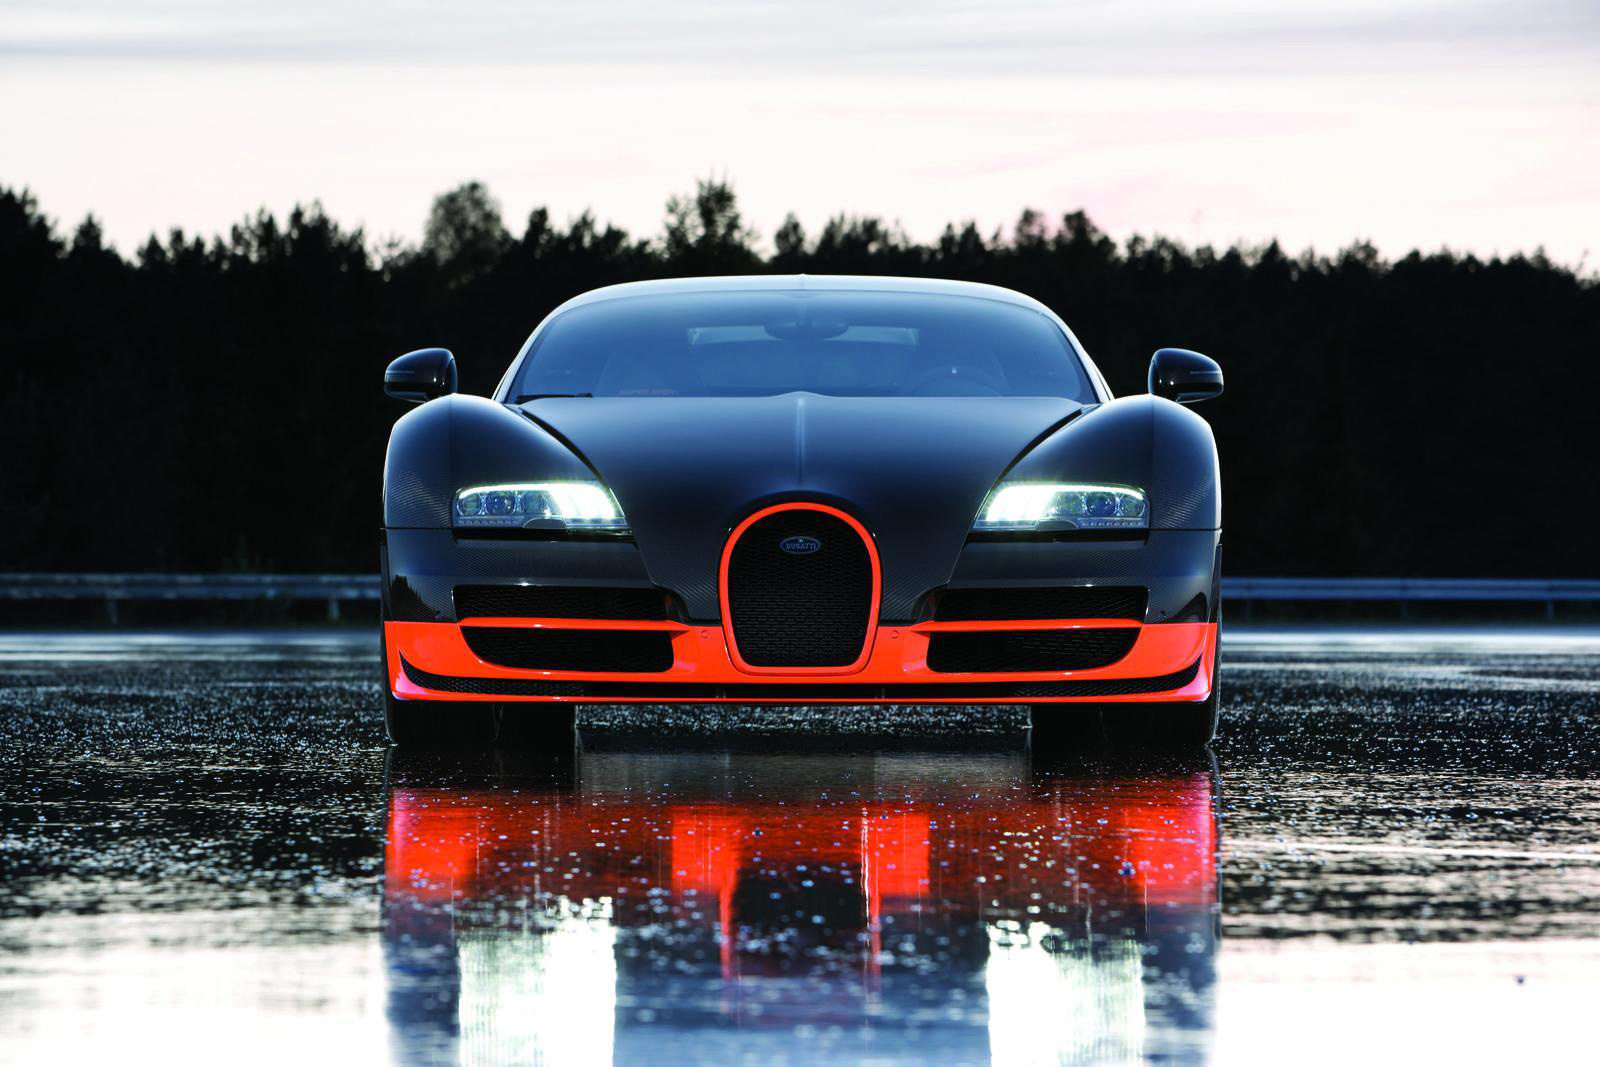 All Five Bugatti Veyron 16.4 Super Sports Sold